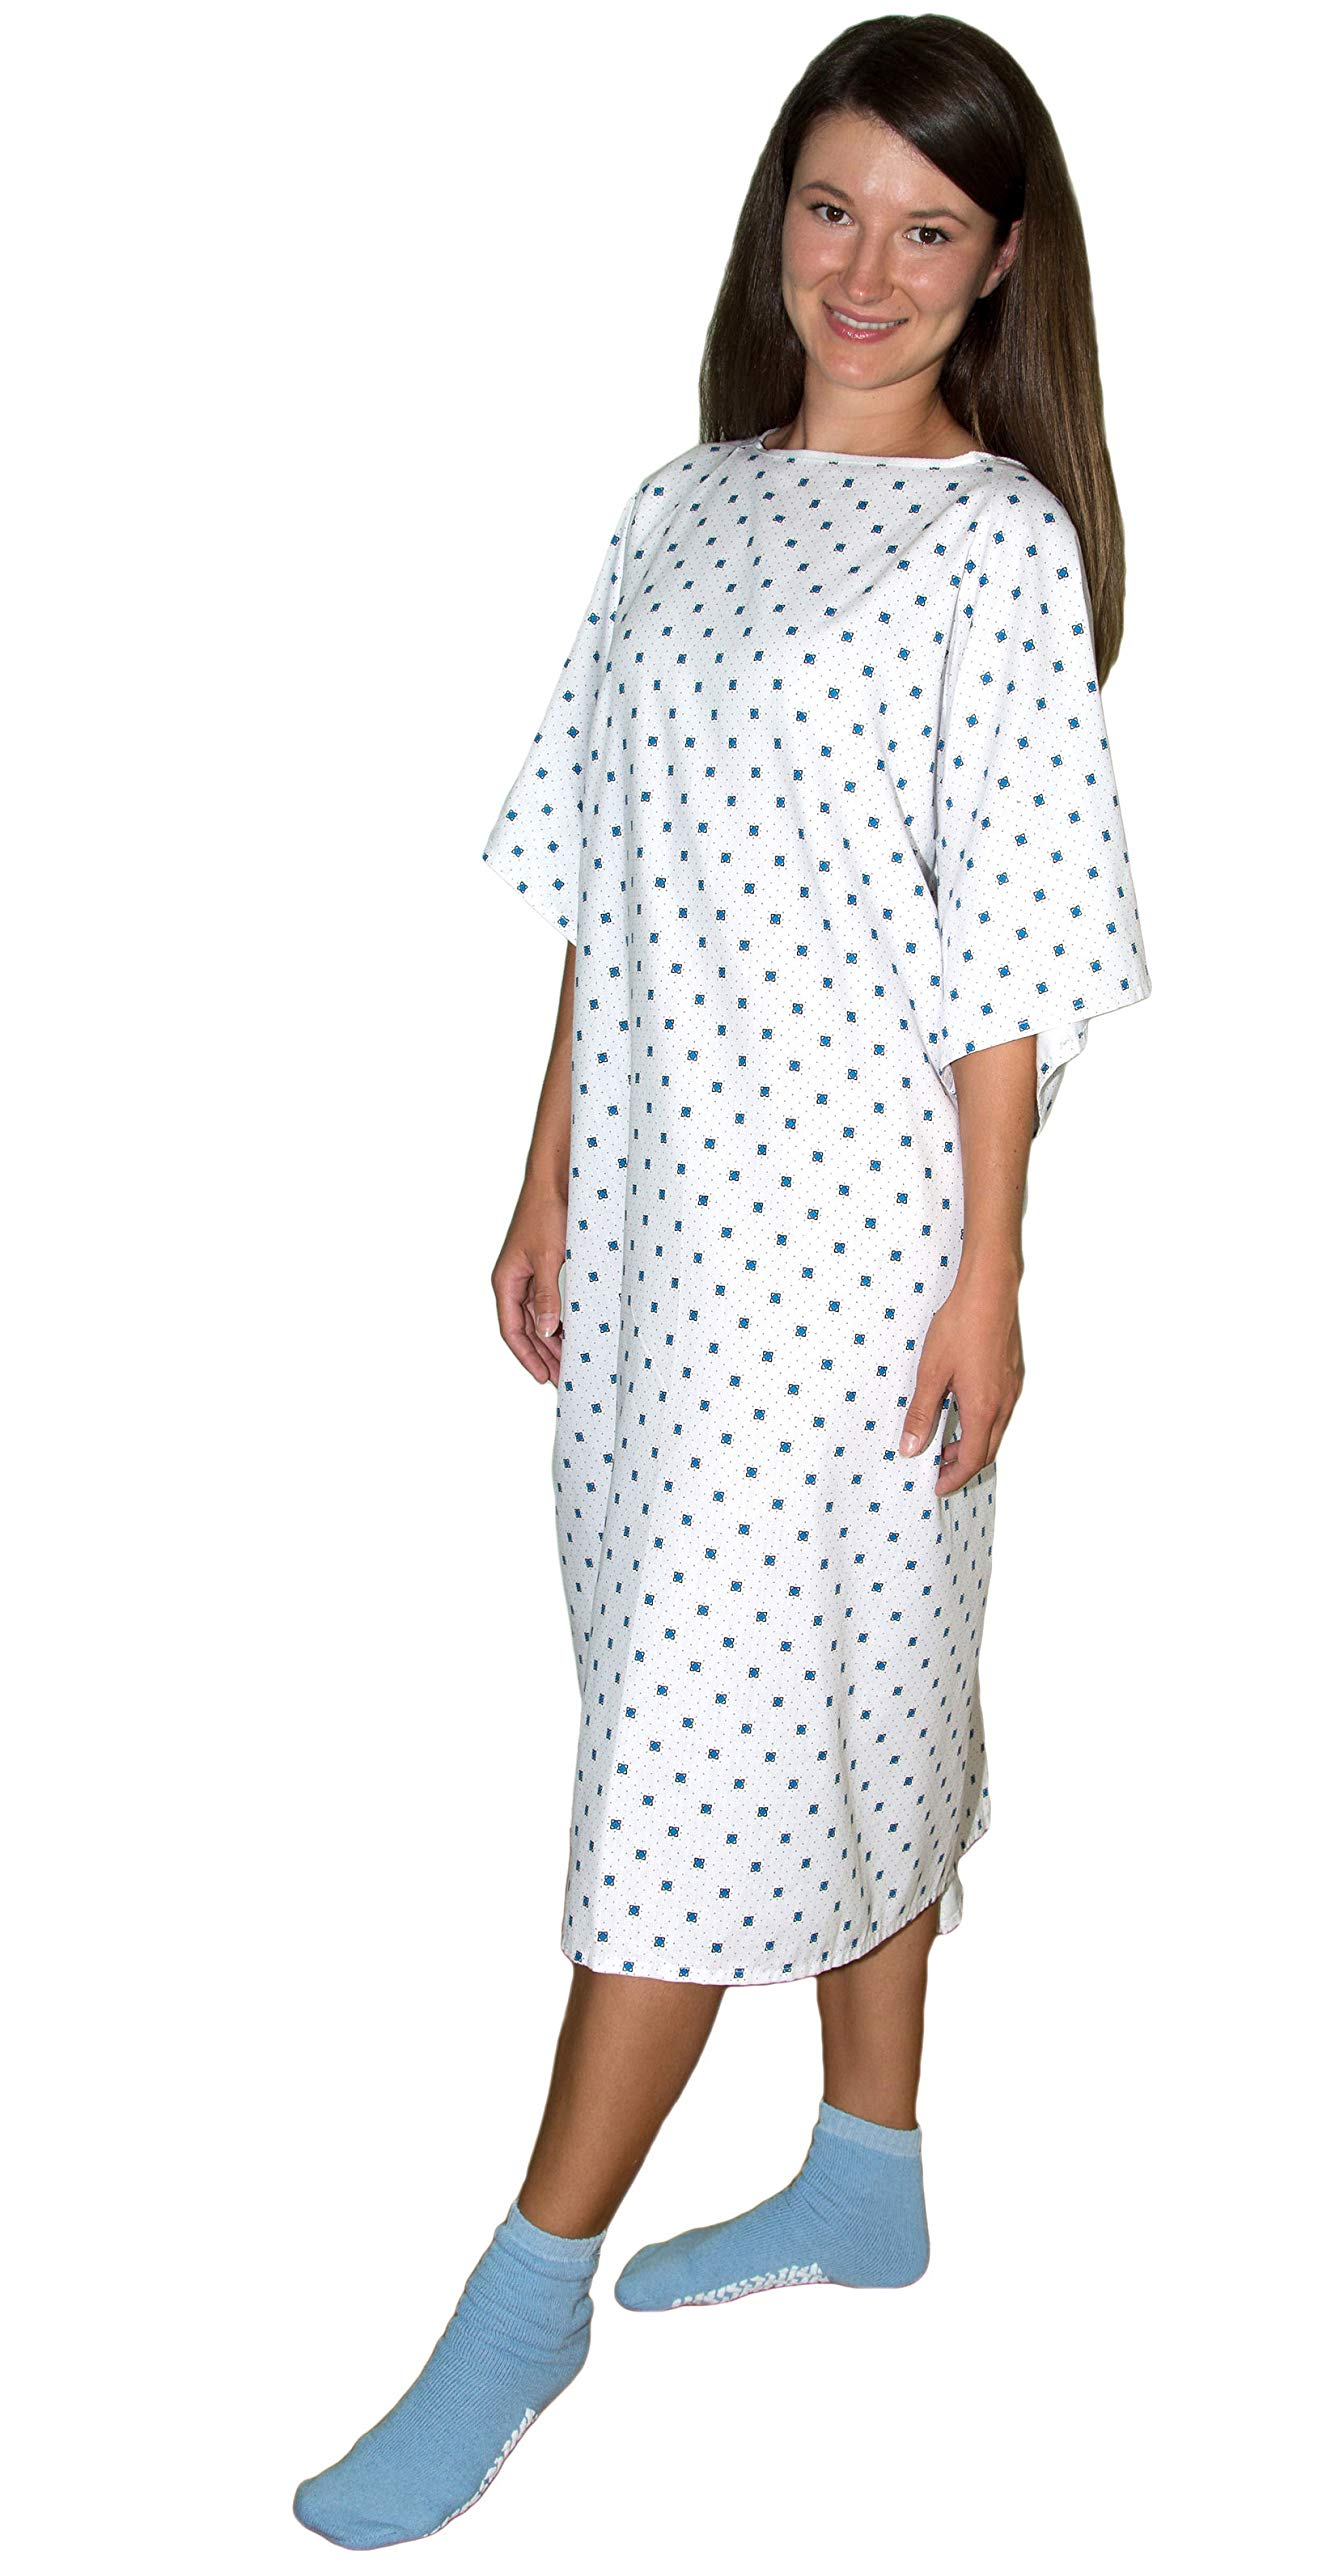 12 Pack - Deluxe Demure Print Hospital Gown/Hospital Patient Gown w/Back Ties